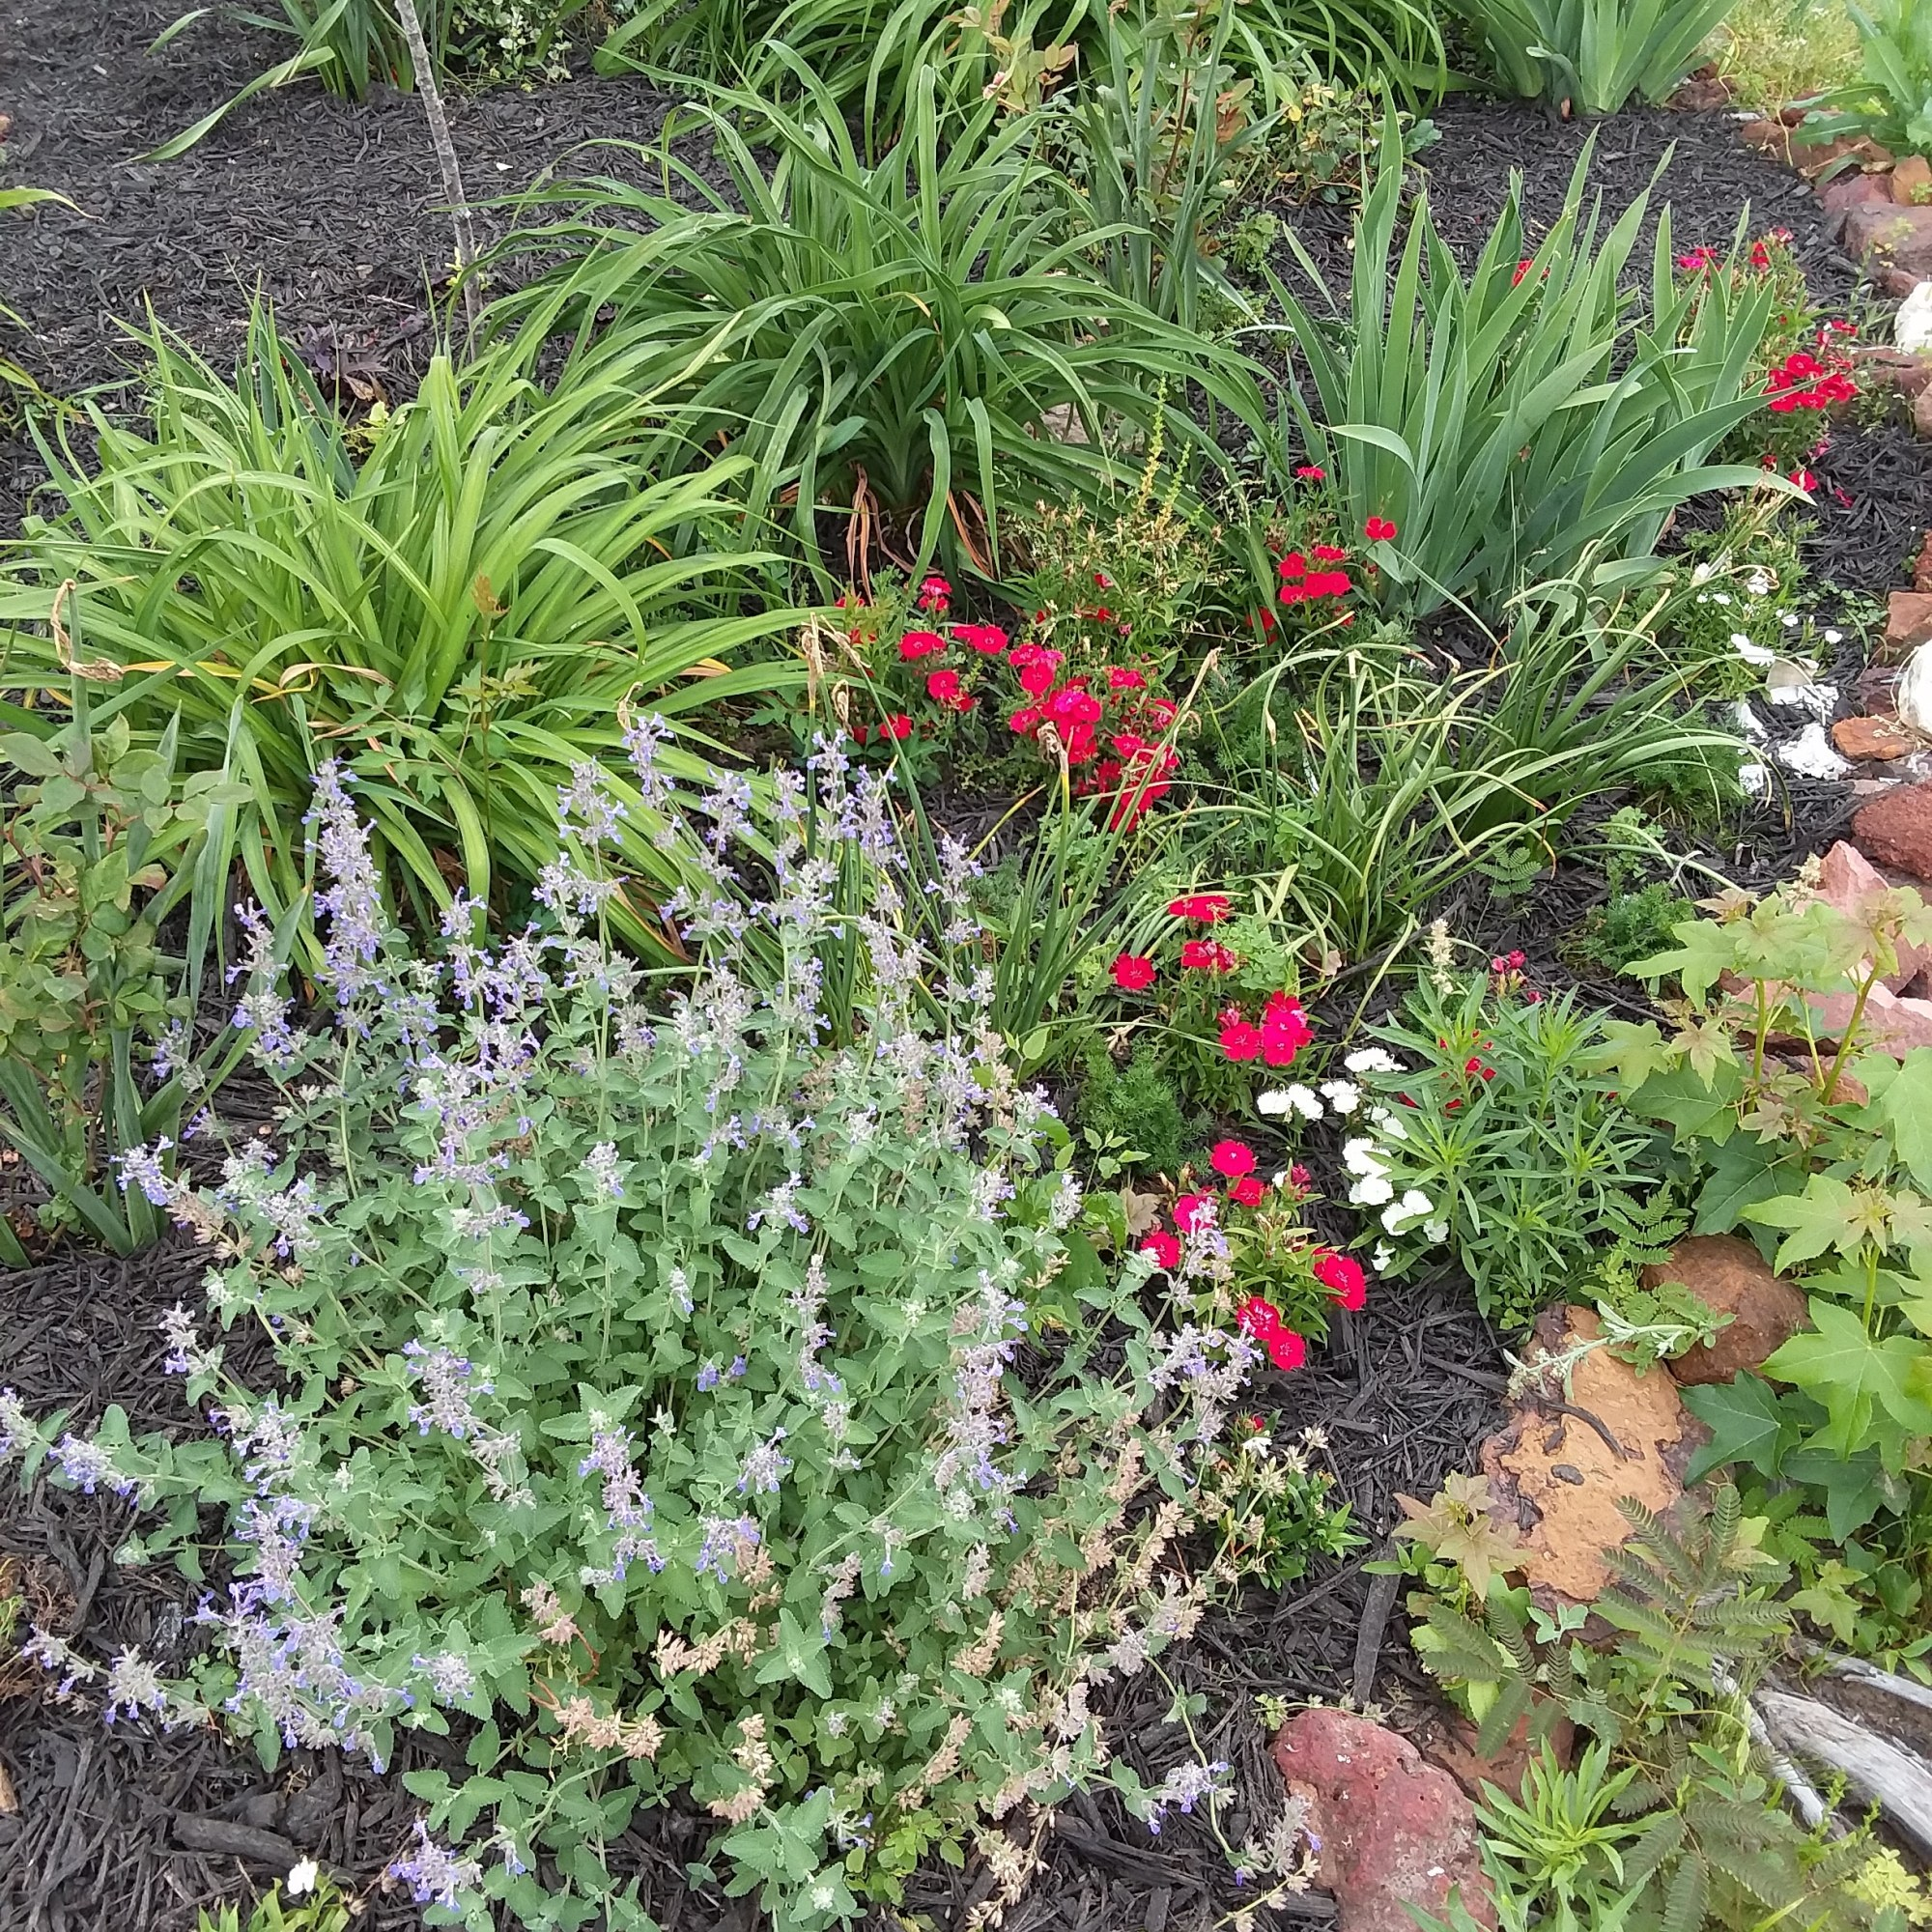 Organic gardening with herbs, compost, and flowers